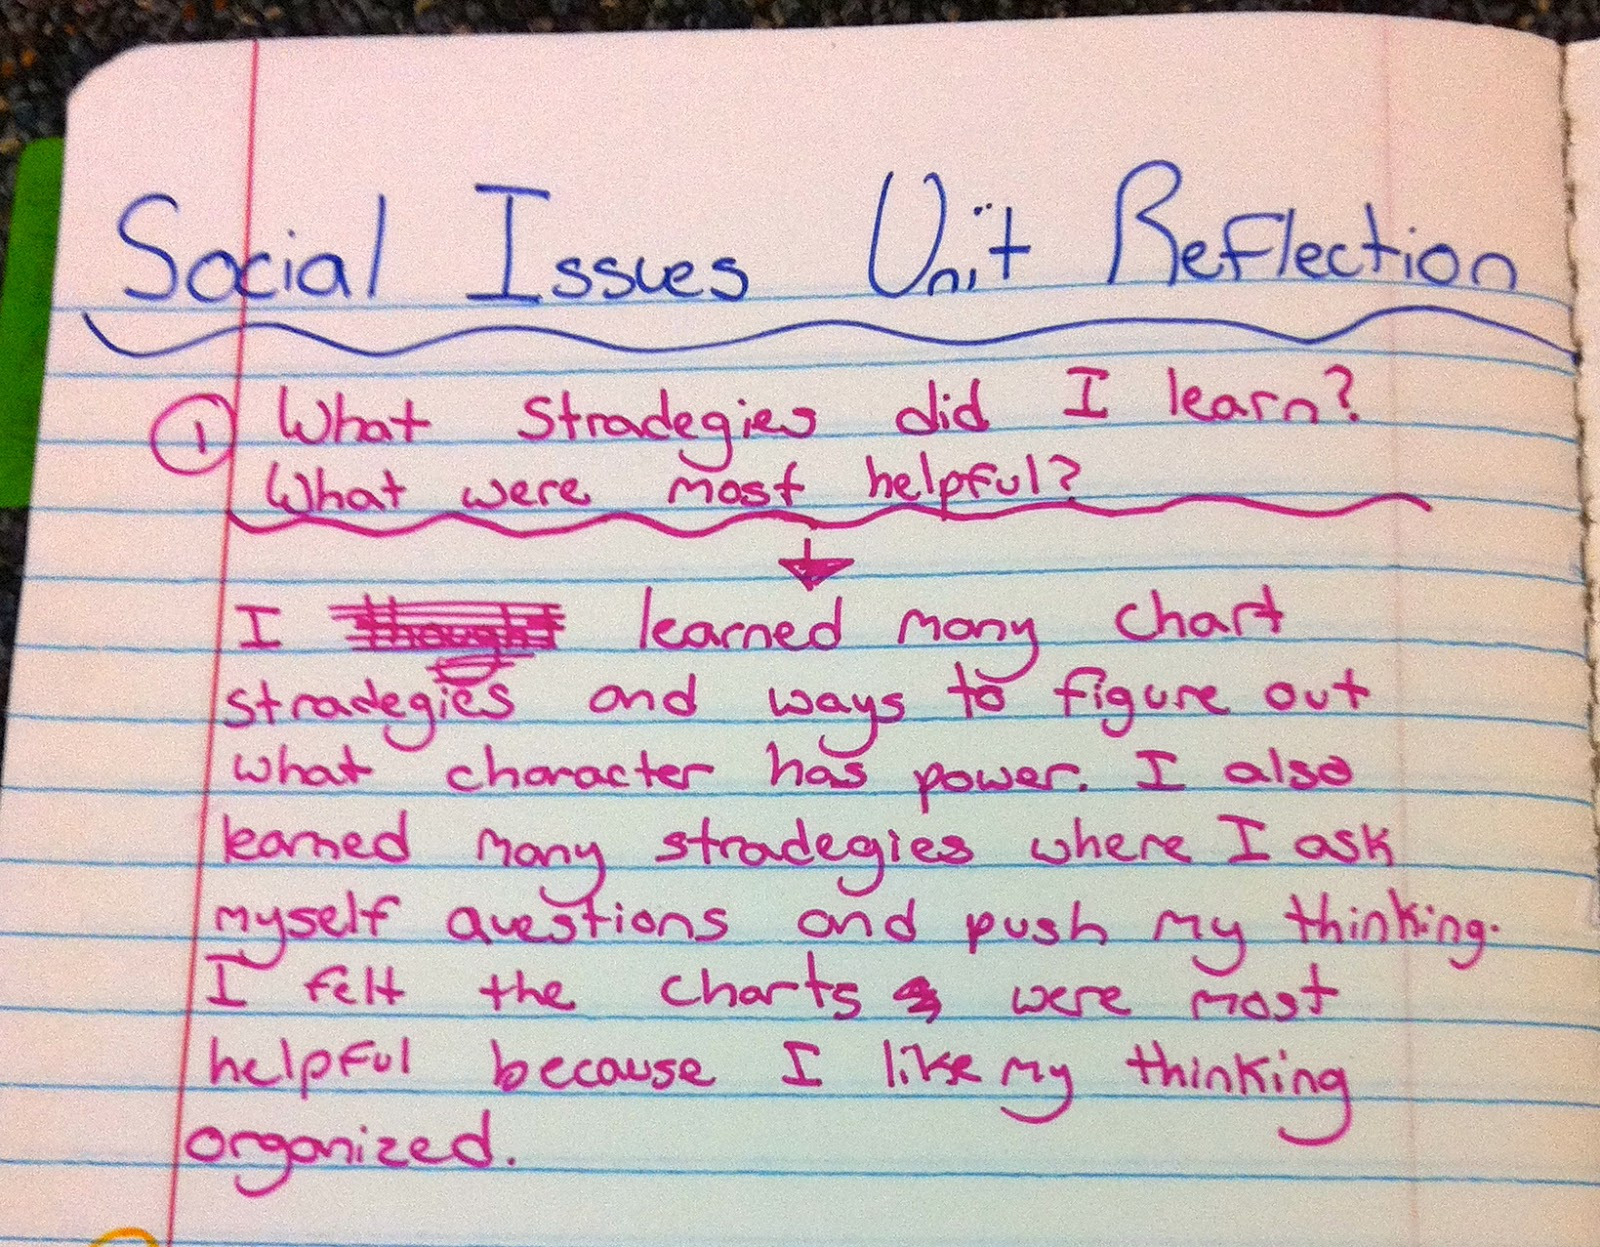 social problems essay essay on social change discovery math  two reflective teachers social issues book club unit reflection i d love to hear other ways students social work essay